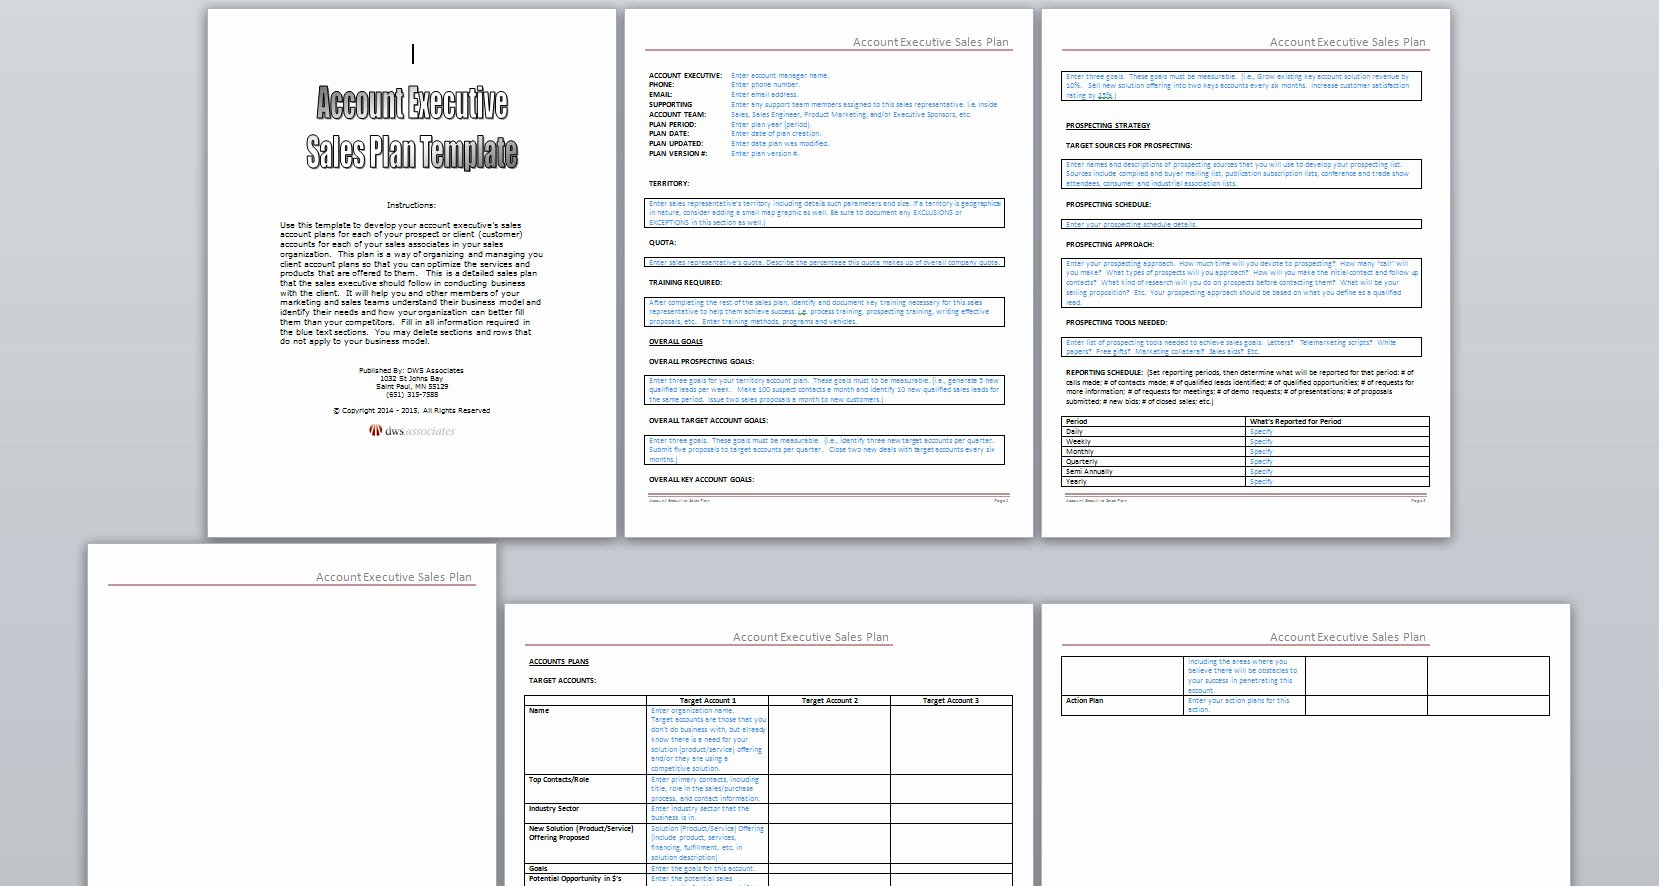 Account Management Plan Template Luxury Sales Plan Template Resume Trakore Document Templates